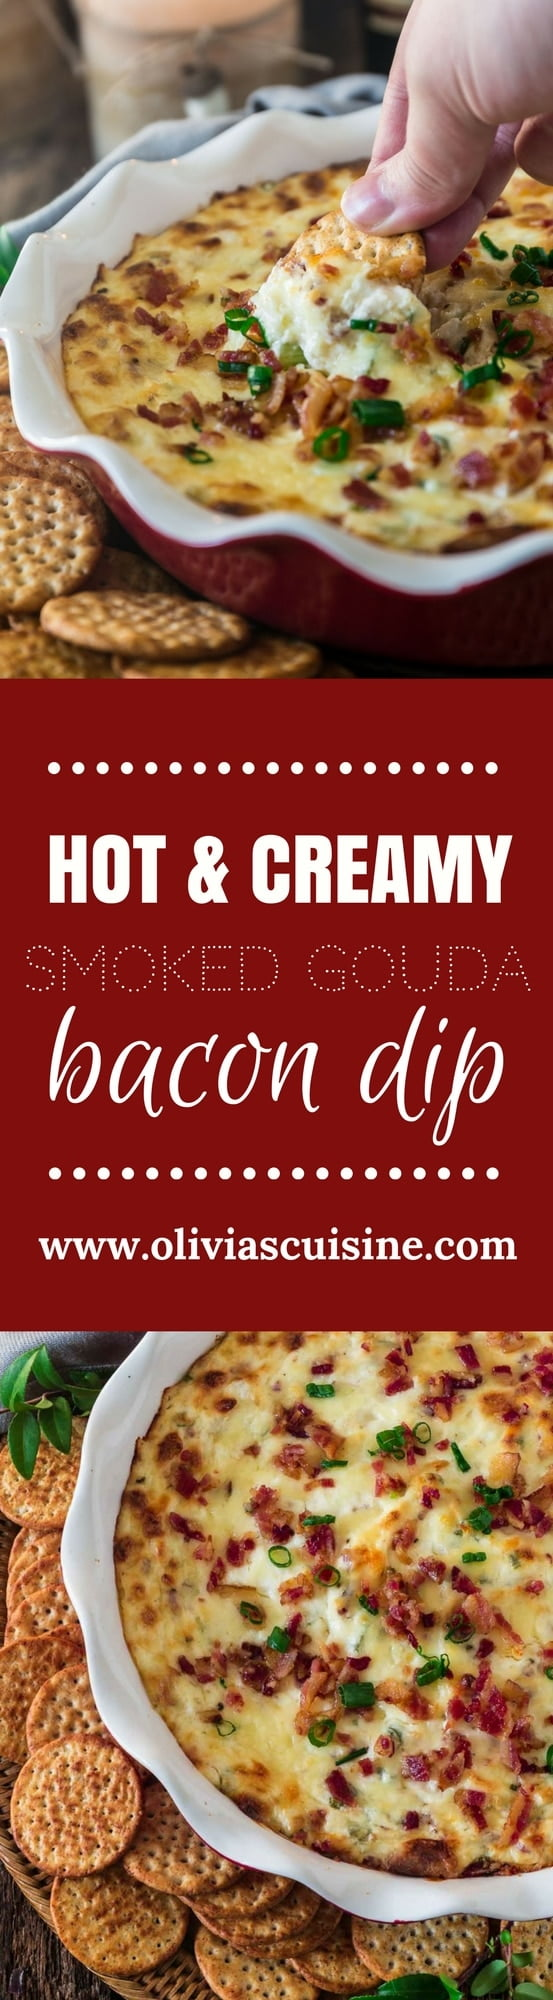 Hot Smoked Gouda Bacon Dip | www.oliviascuisine.com | Creamy, gooey and loaded with everyone's favorite ingredient, bacon, this Hot Smoked Gouda Bacon Dip is destined to be the star of your holiday party! Pair it with some good wine and you're on the road to success.